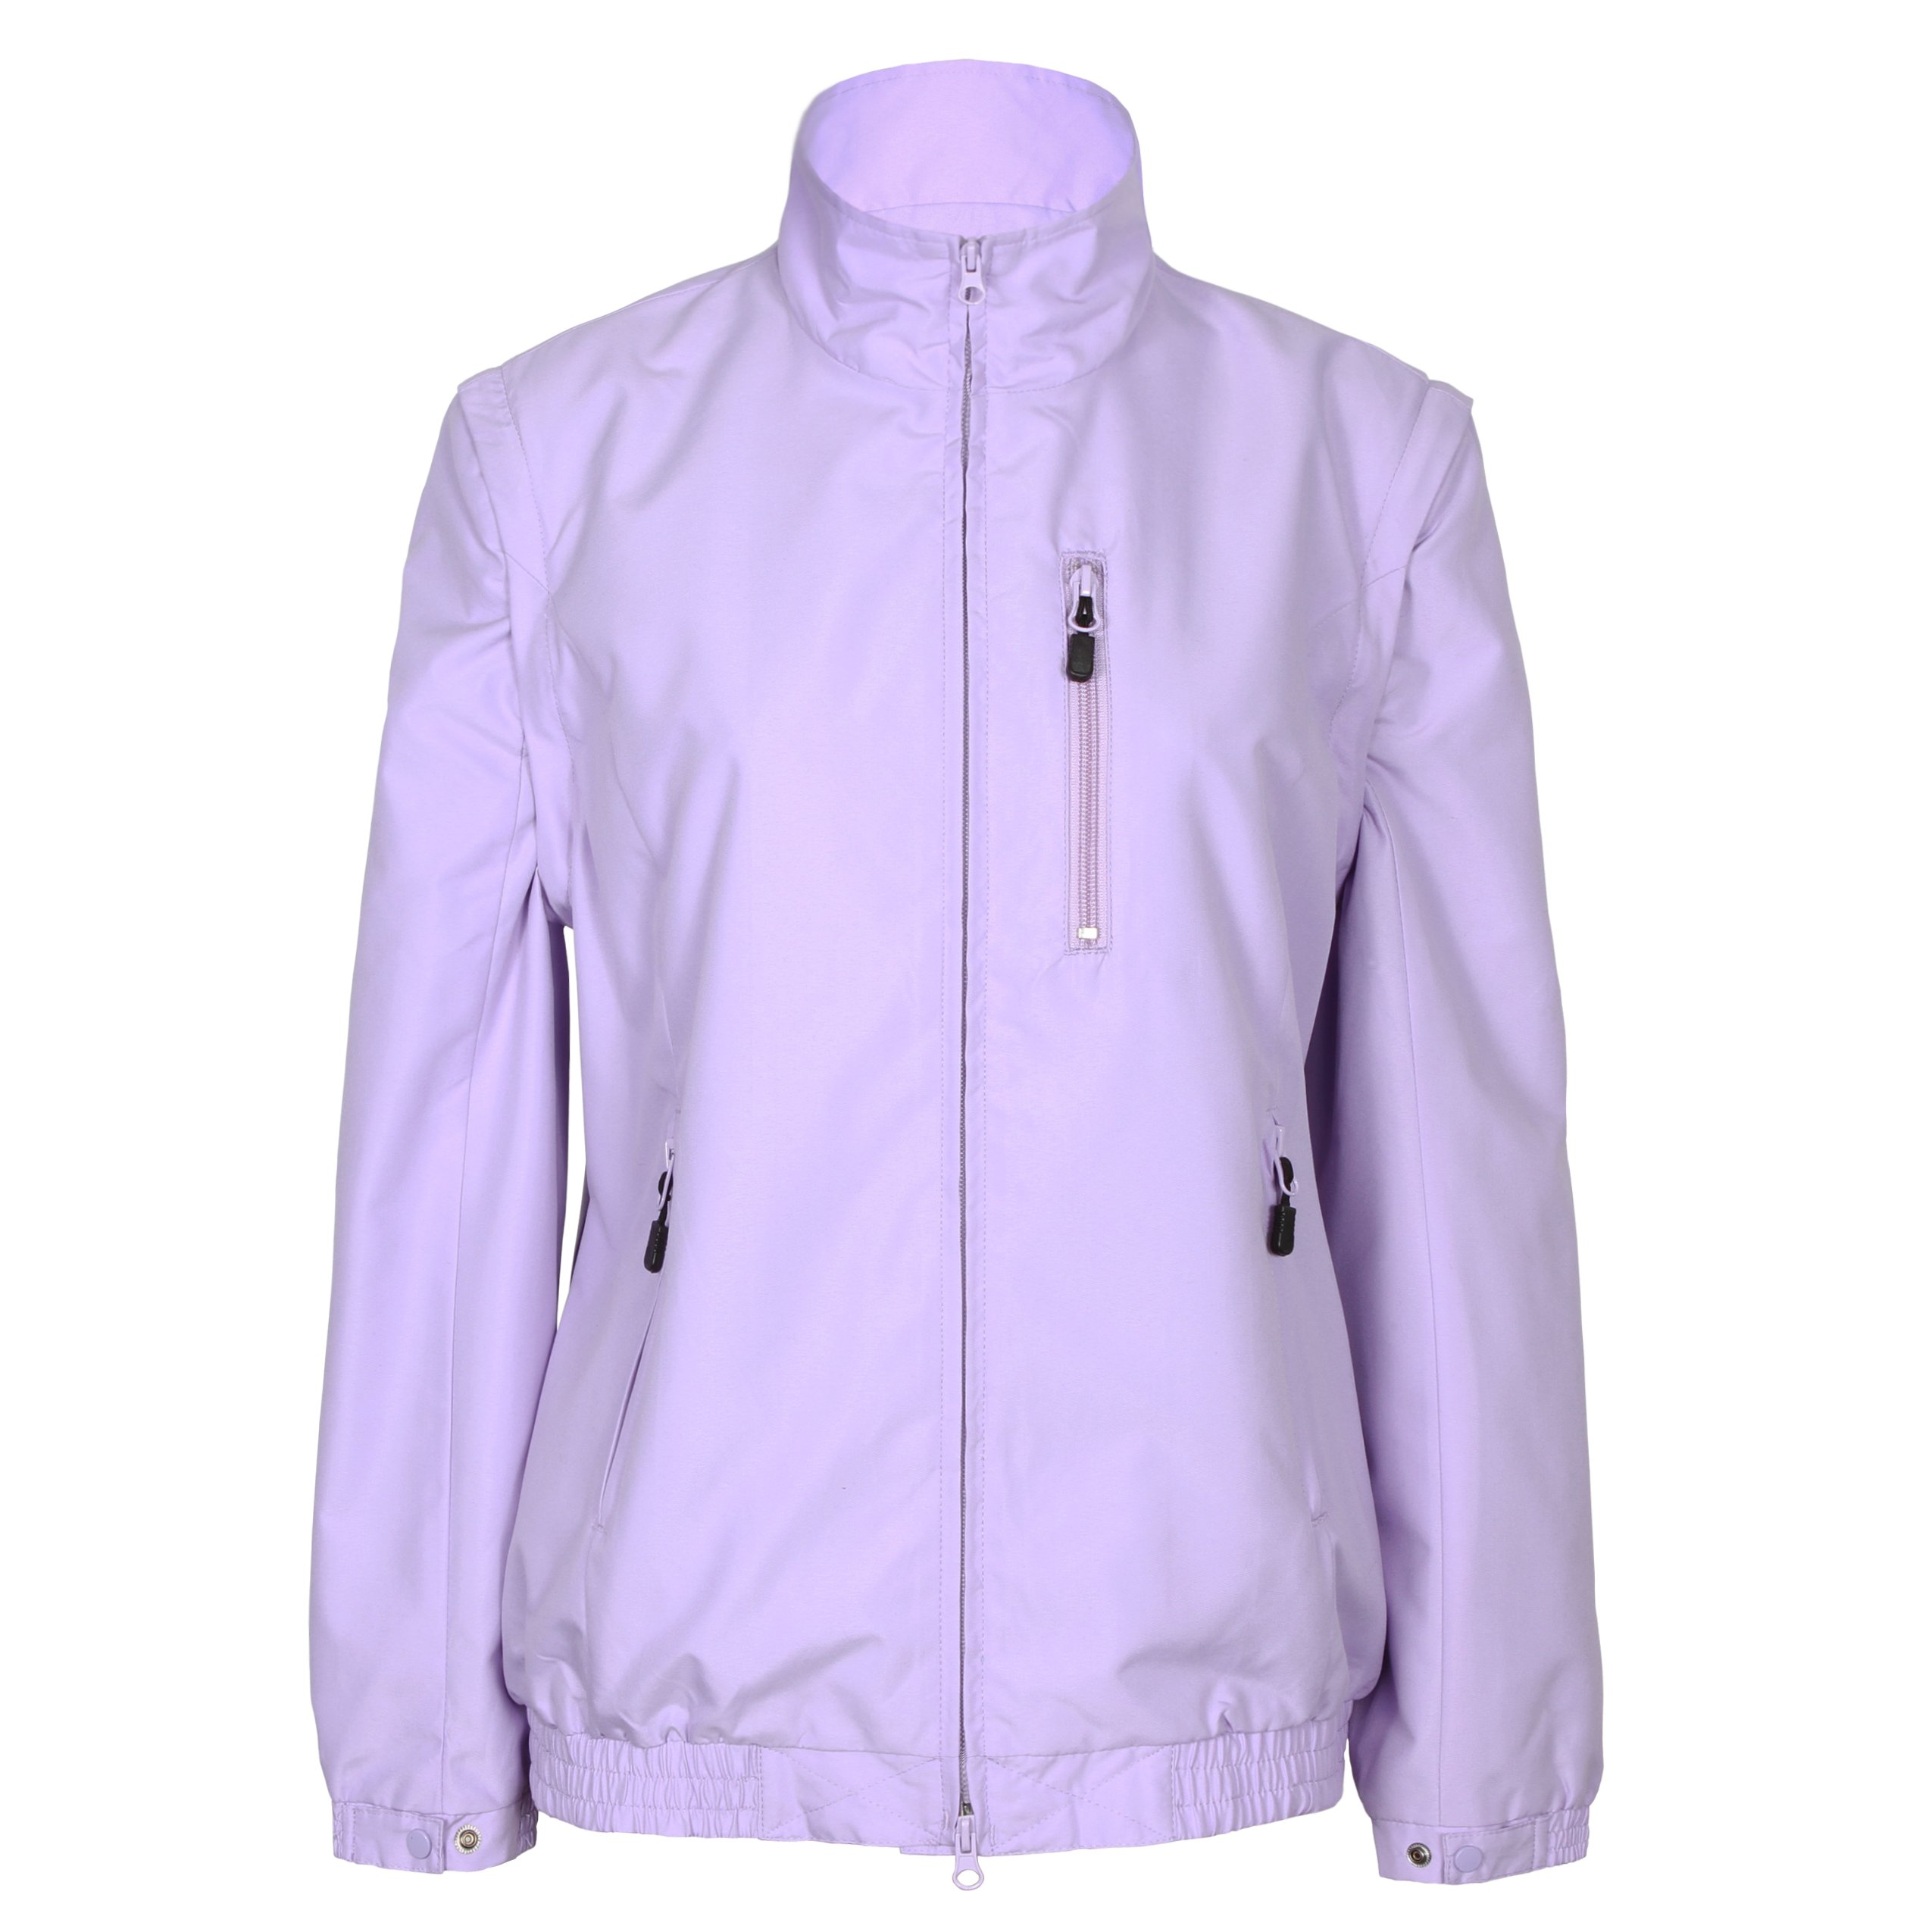 Tres Bien Golf Women's 2 in 1 Convertible Jacket / Vest (Small, Lilac) by Tres Bien Golf